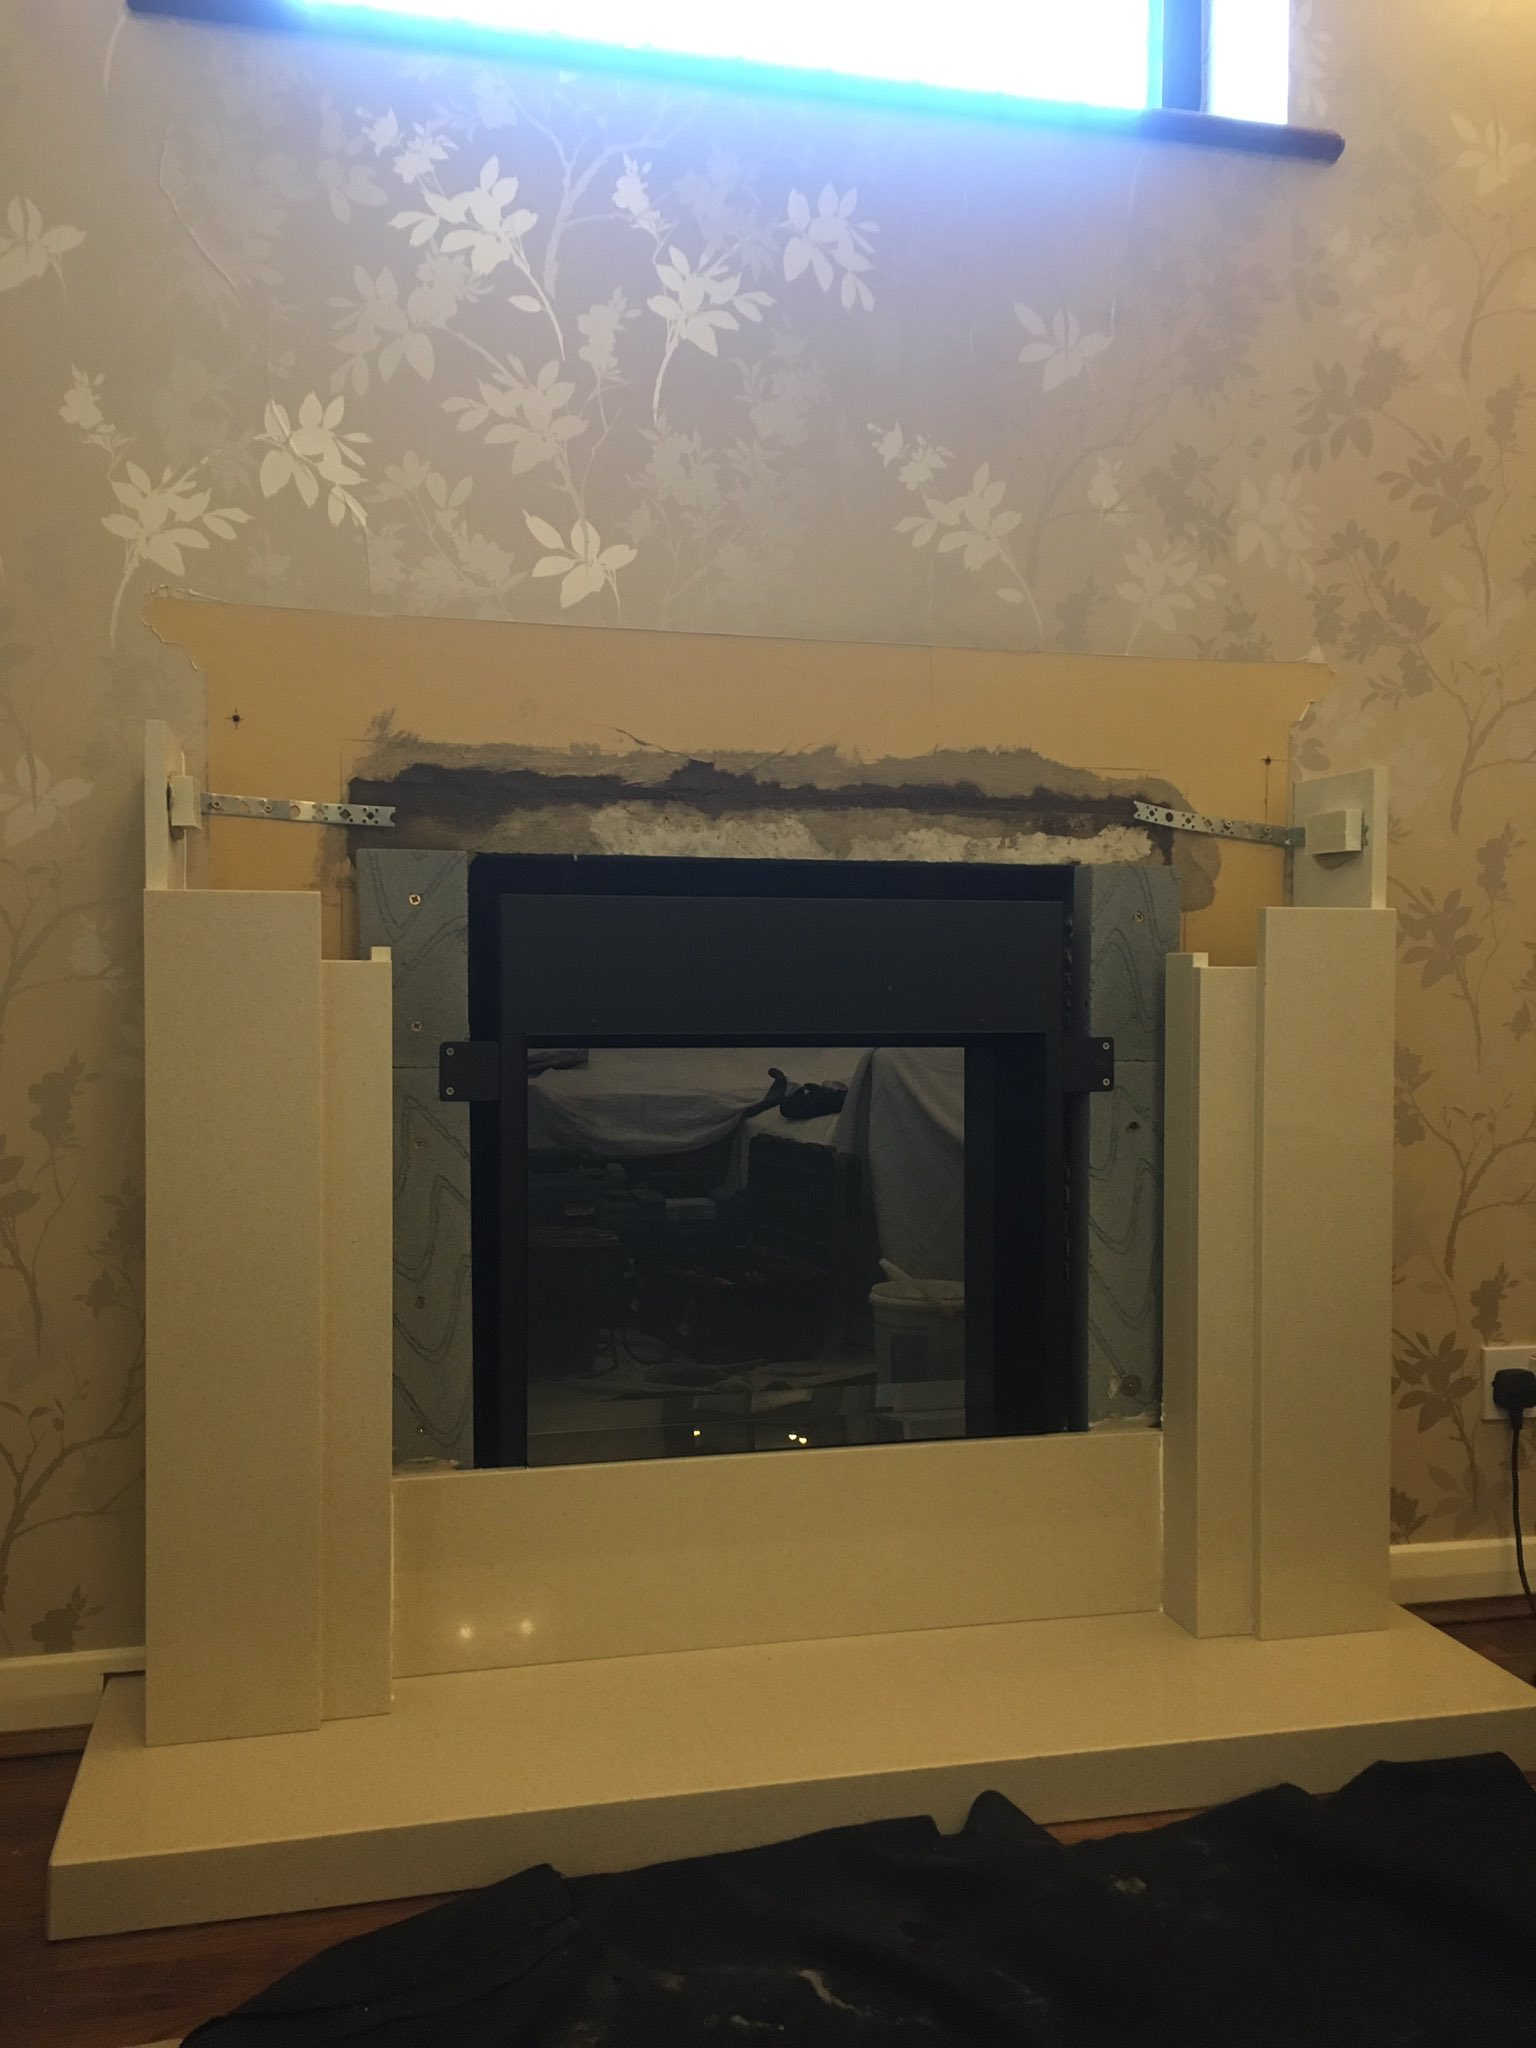 infinity 480 electric fire. bdl gas services on twitter: \ infinity 480 electric fire